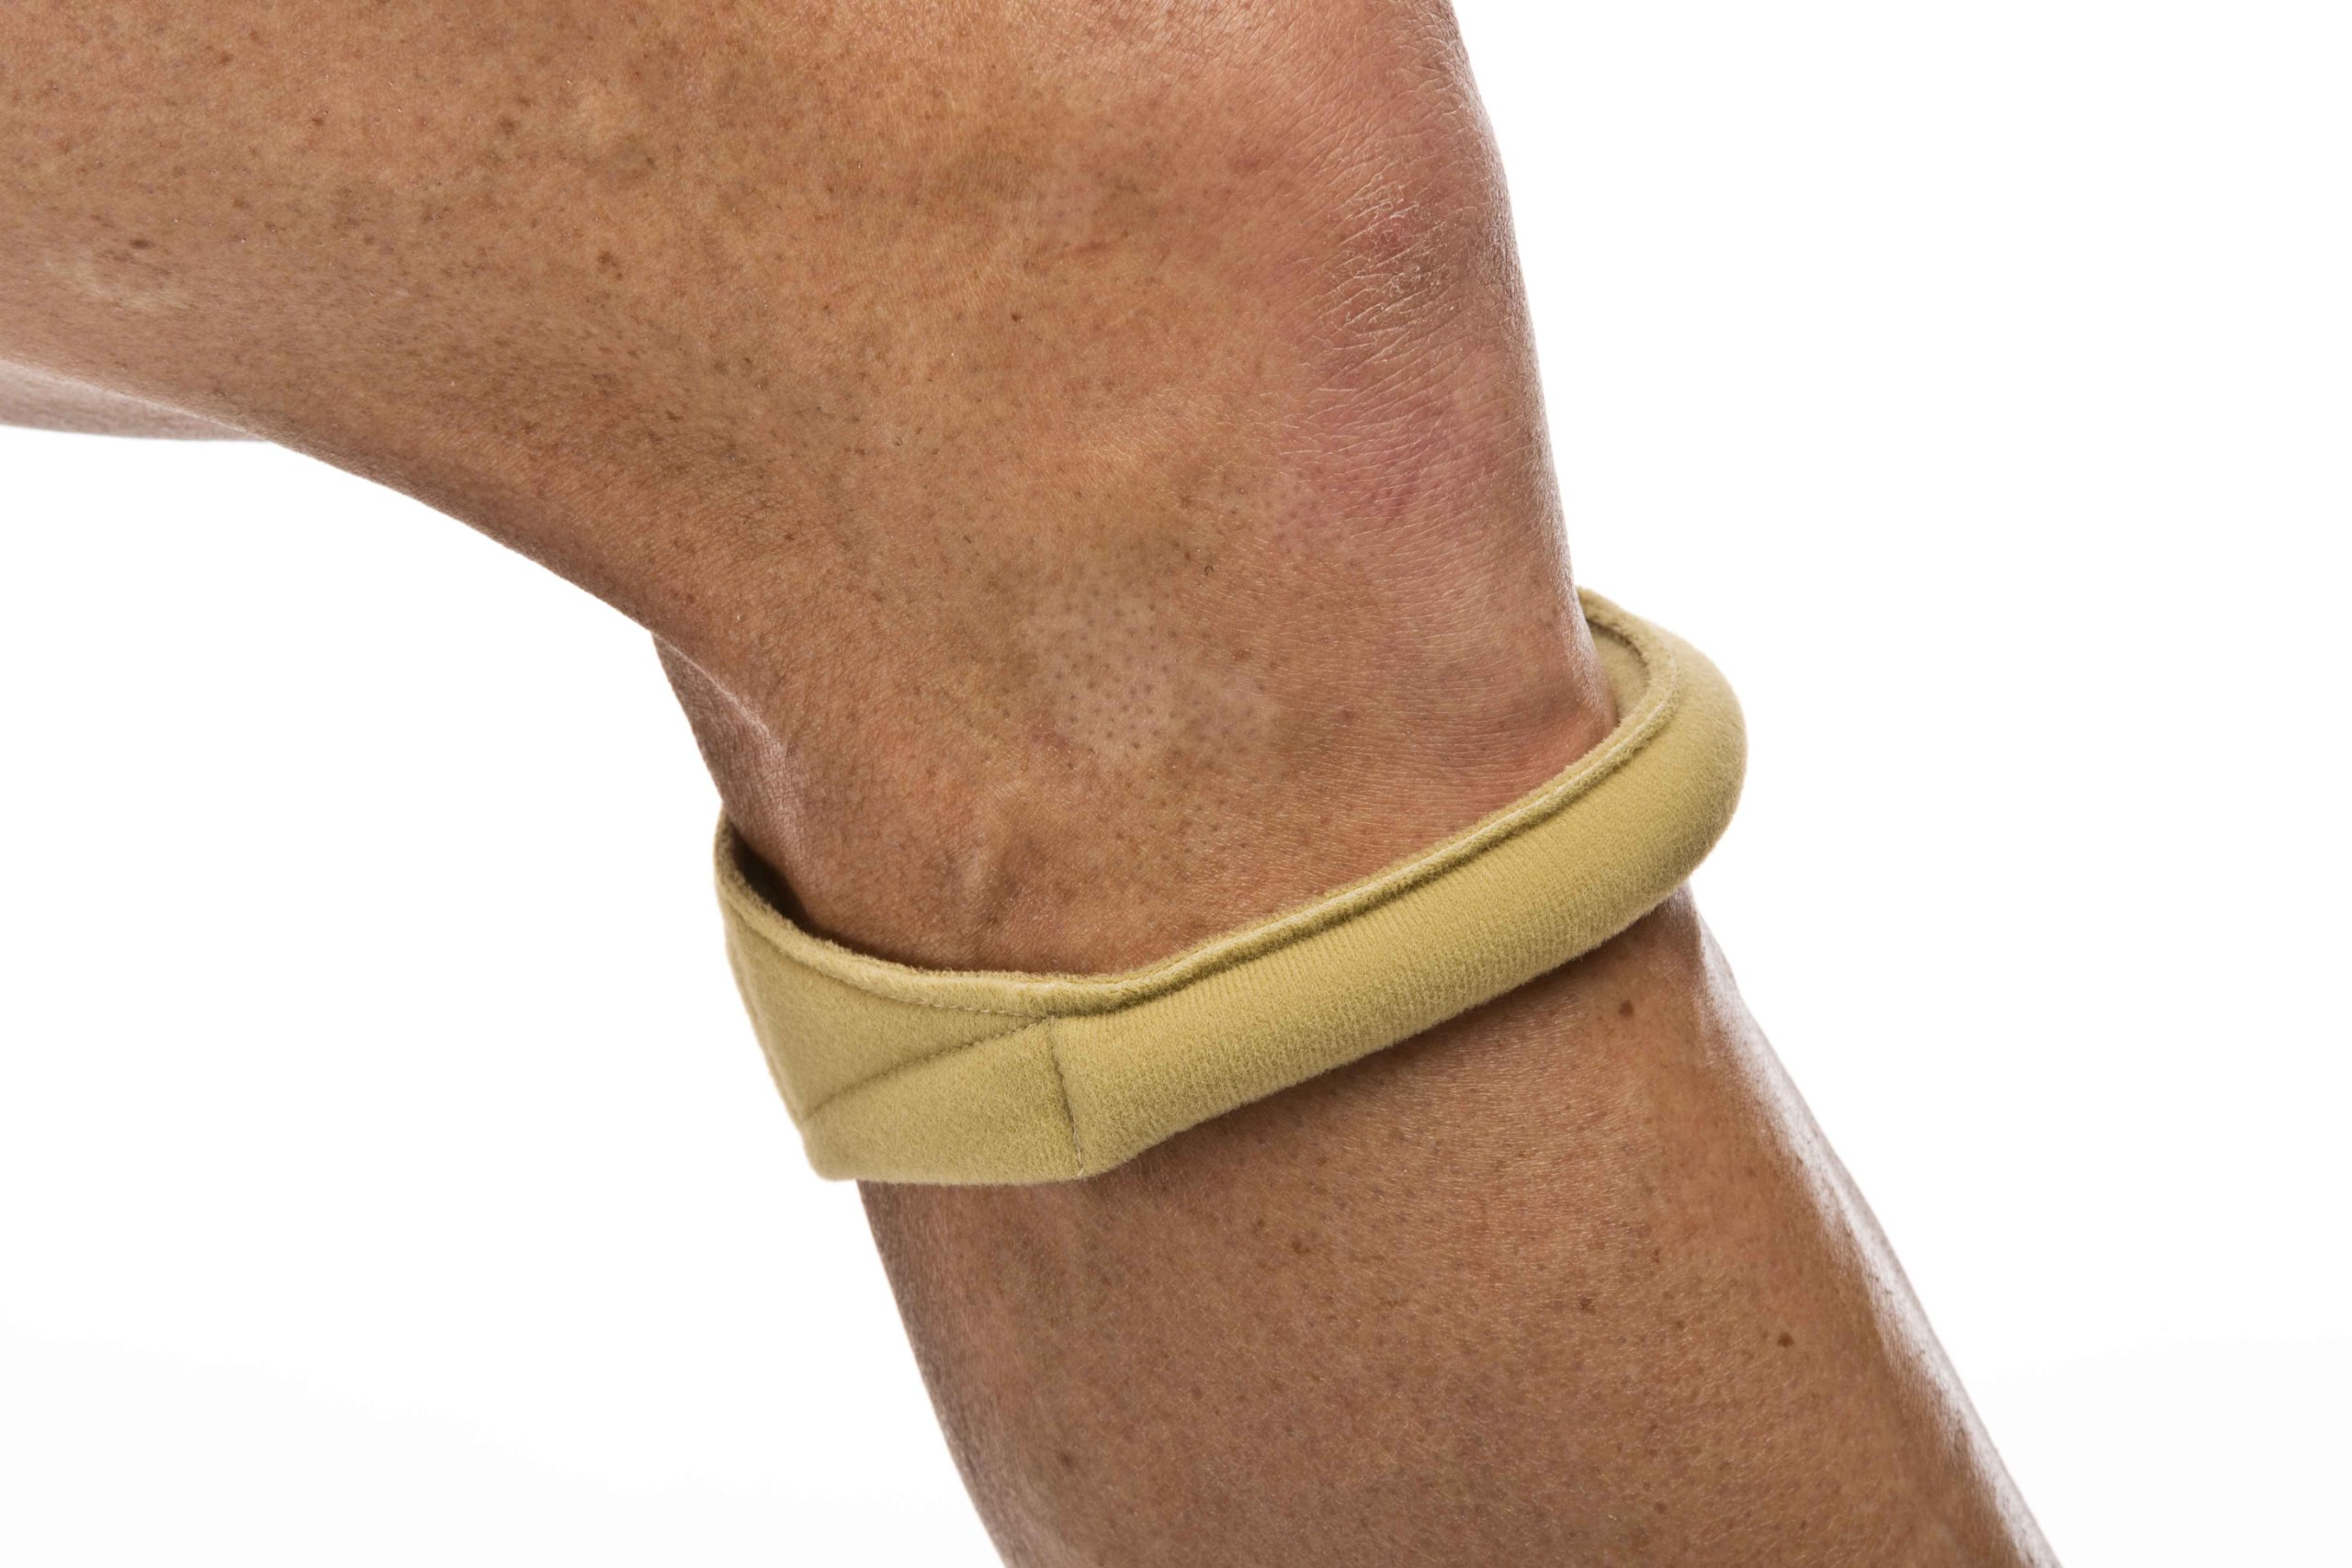 Cho-Pat Original Knee Strap - Recommended by Doctors to Reduce Knee Pain from Arthritis and Running - Tan (XS, Less than 10'')